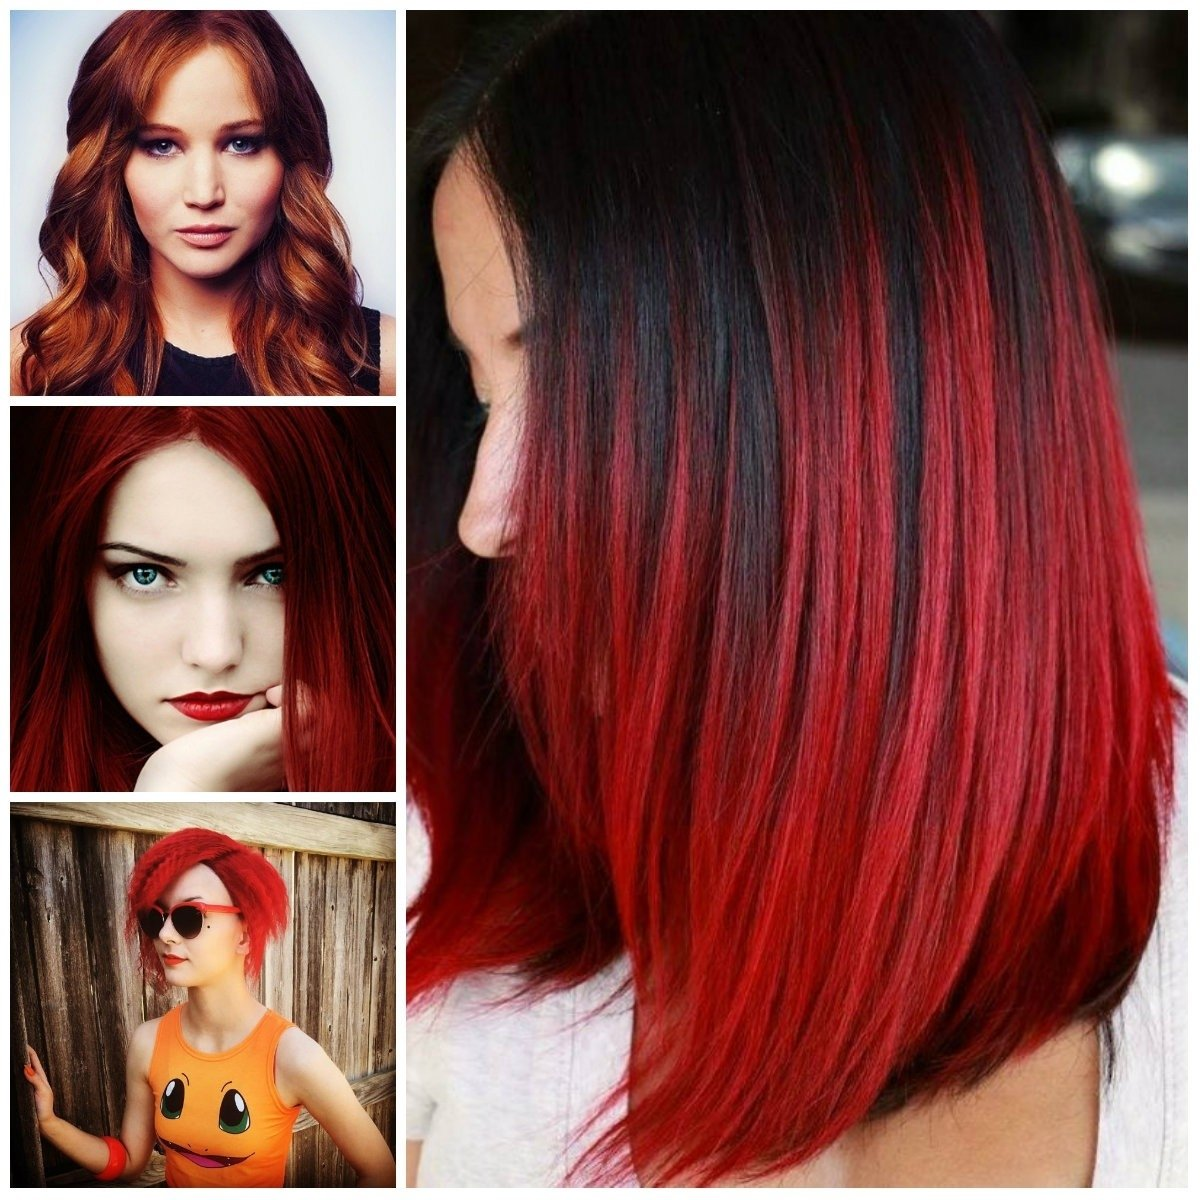 10 Gorgeous Different Shades Of Red Hair Color Ideas bright red hair ideas for 2017 new hair color ideas trends for 2020